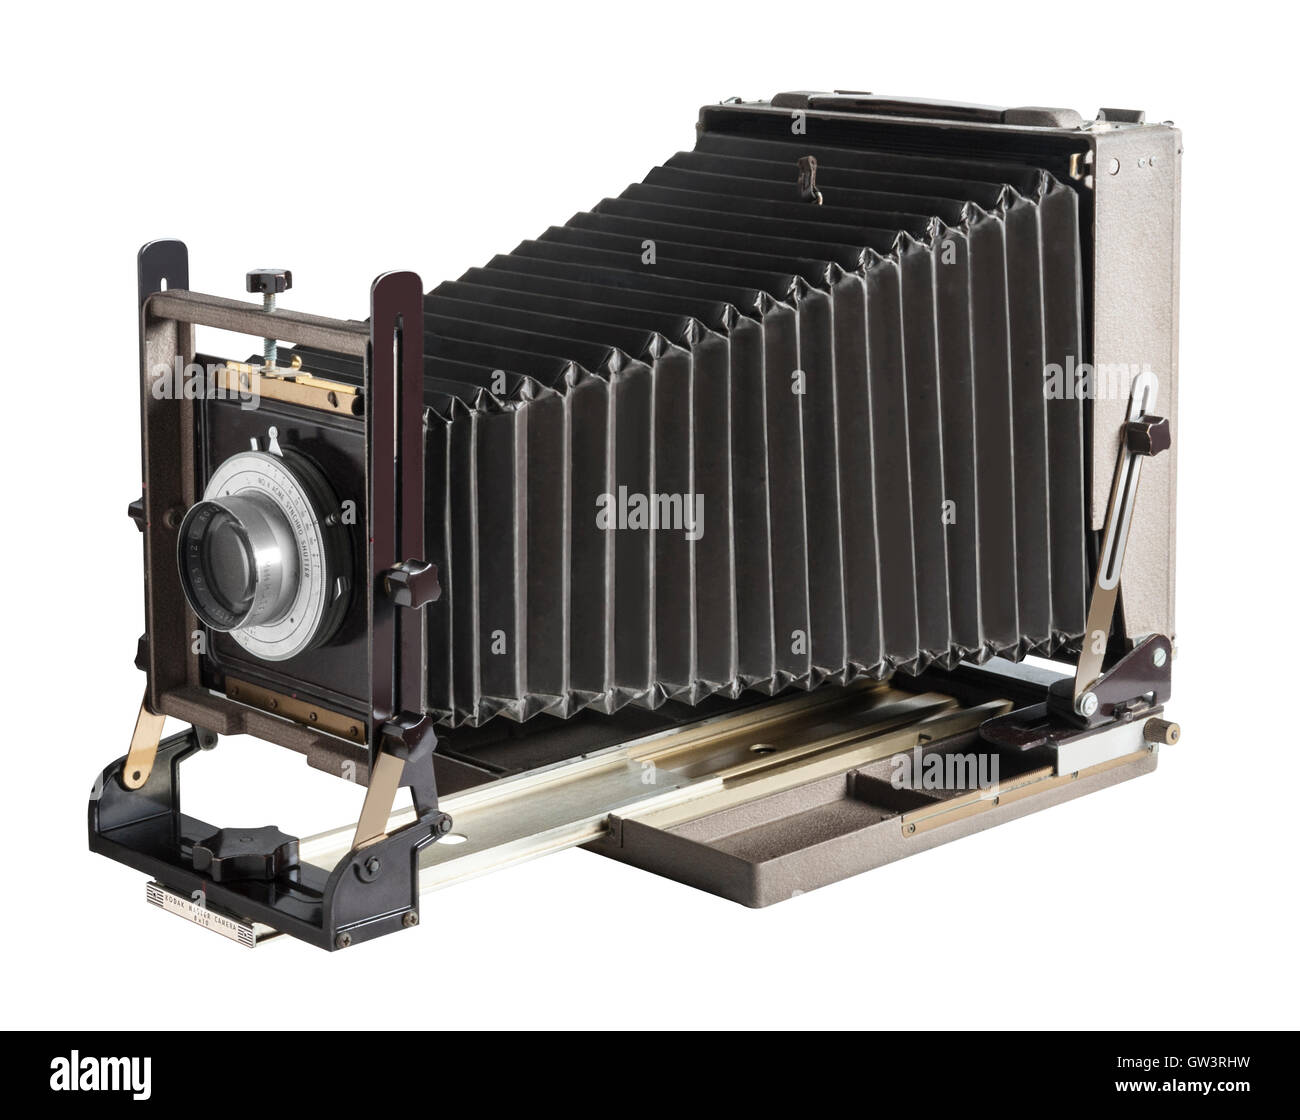 Antique Kodak Master View 8X10 inch view camera with 12 inch Commercial Ektar lens - Stock Image